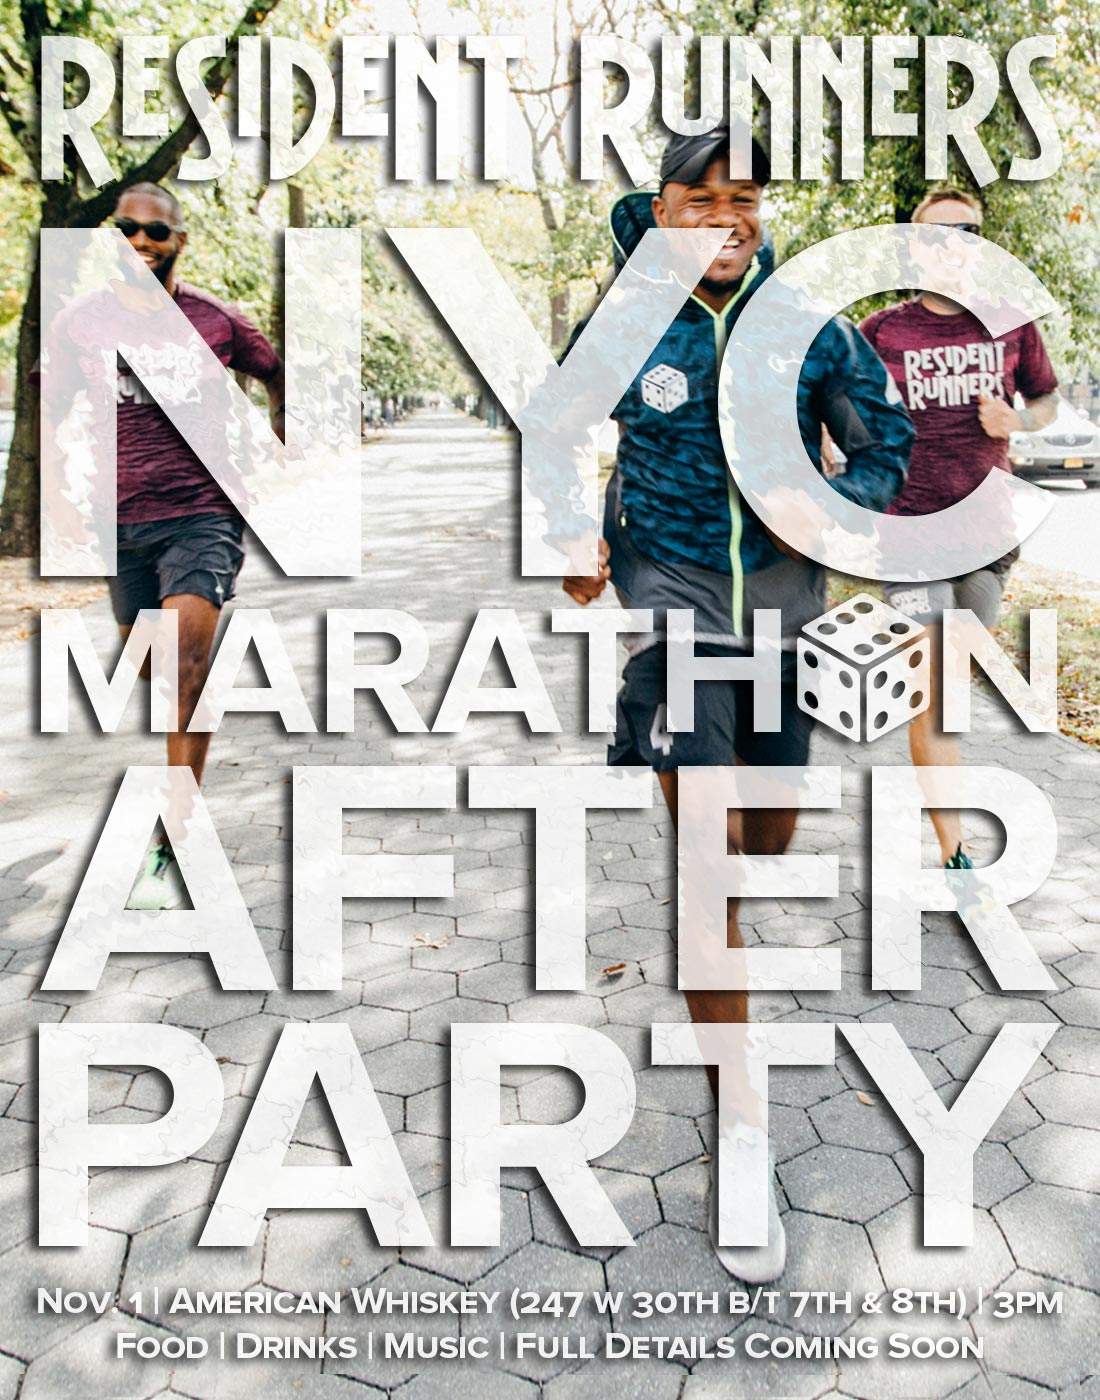 resident_runners_nyc_marathon_after_party_2015.jpg